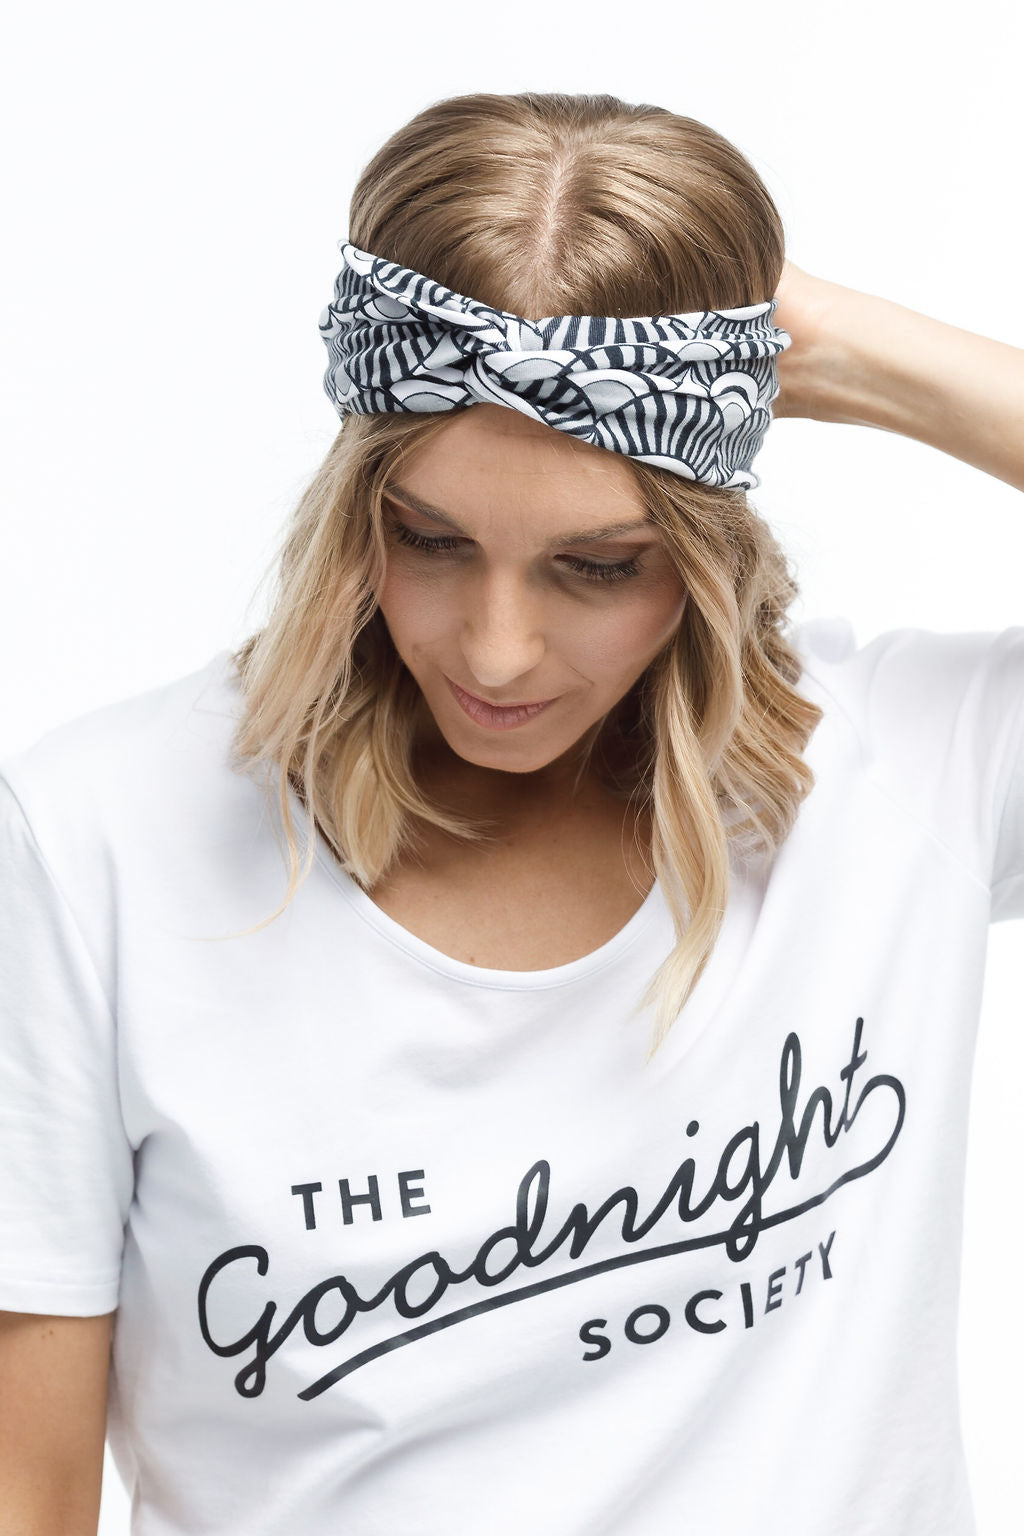 TWISTED HEADBAND - Black & White Shell Print